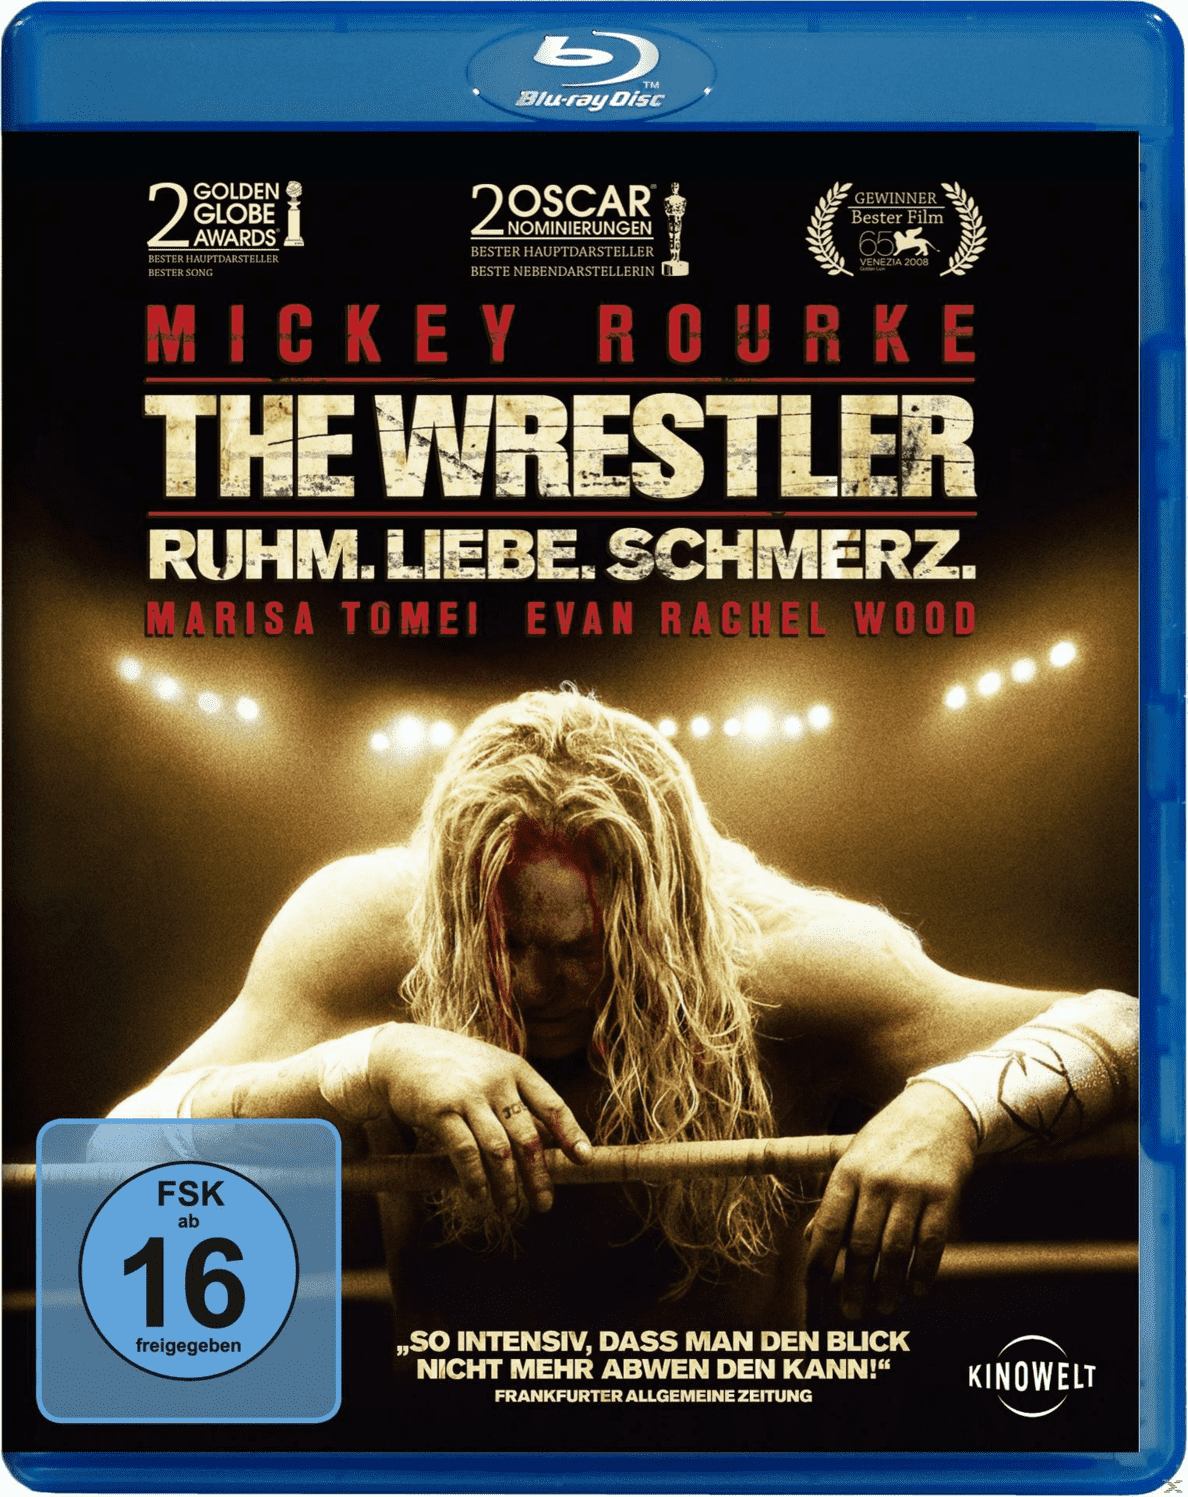 The Wrestler auf Blu-ray